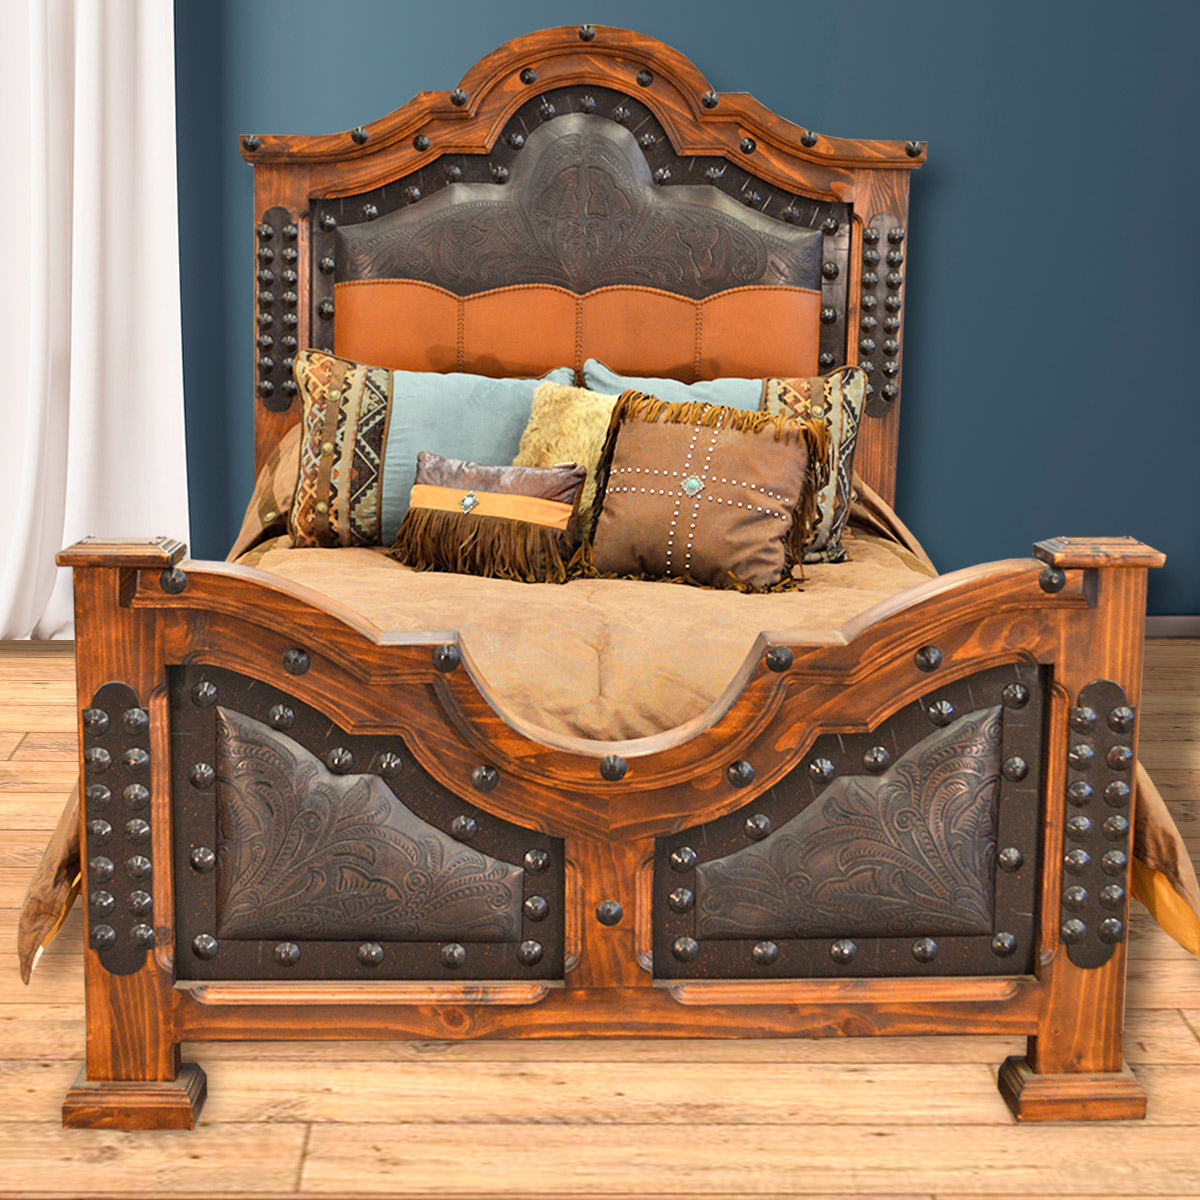 Kensington Tooled Leather Bed - King